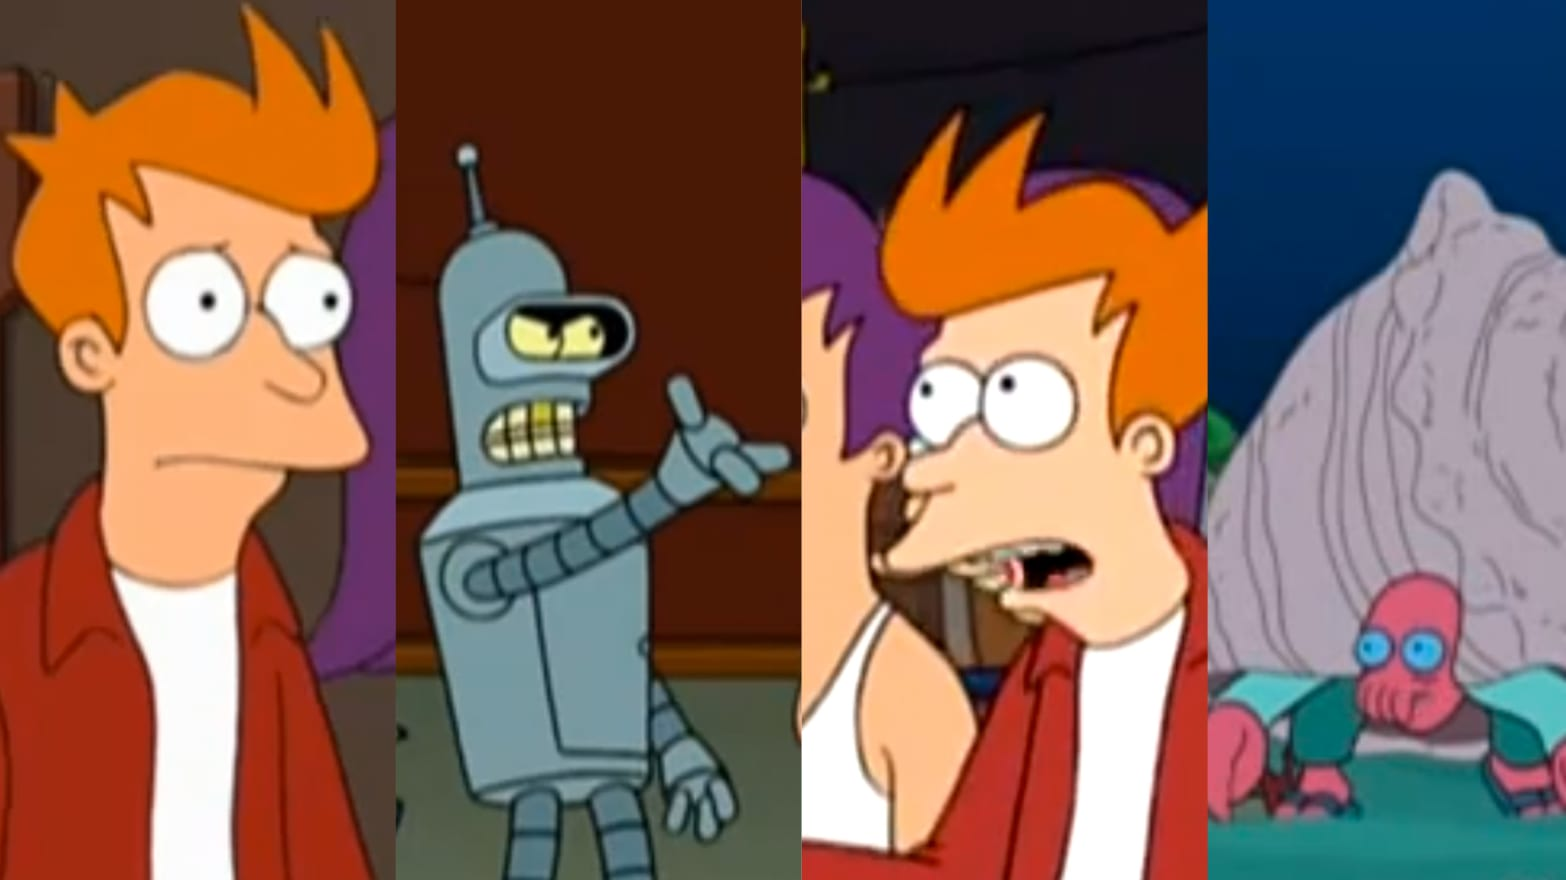 Bender dating service Futurama